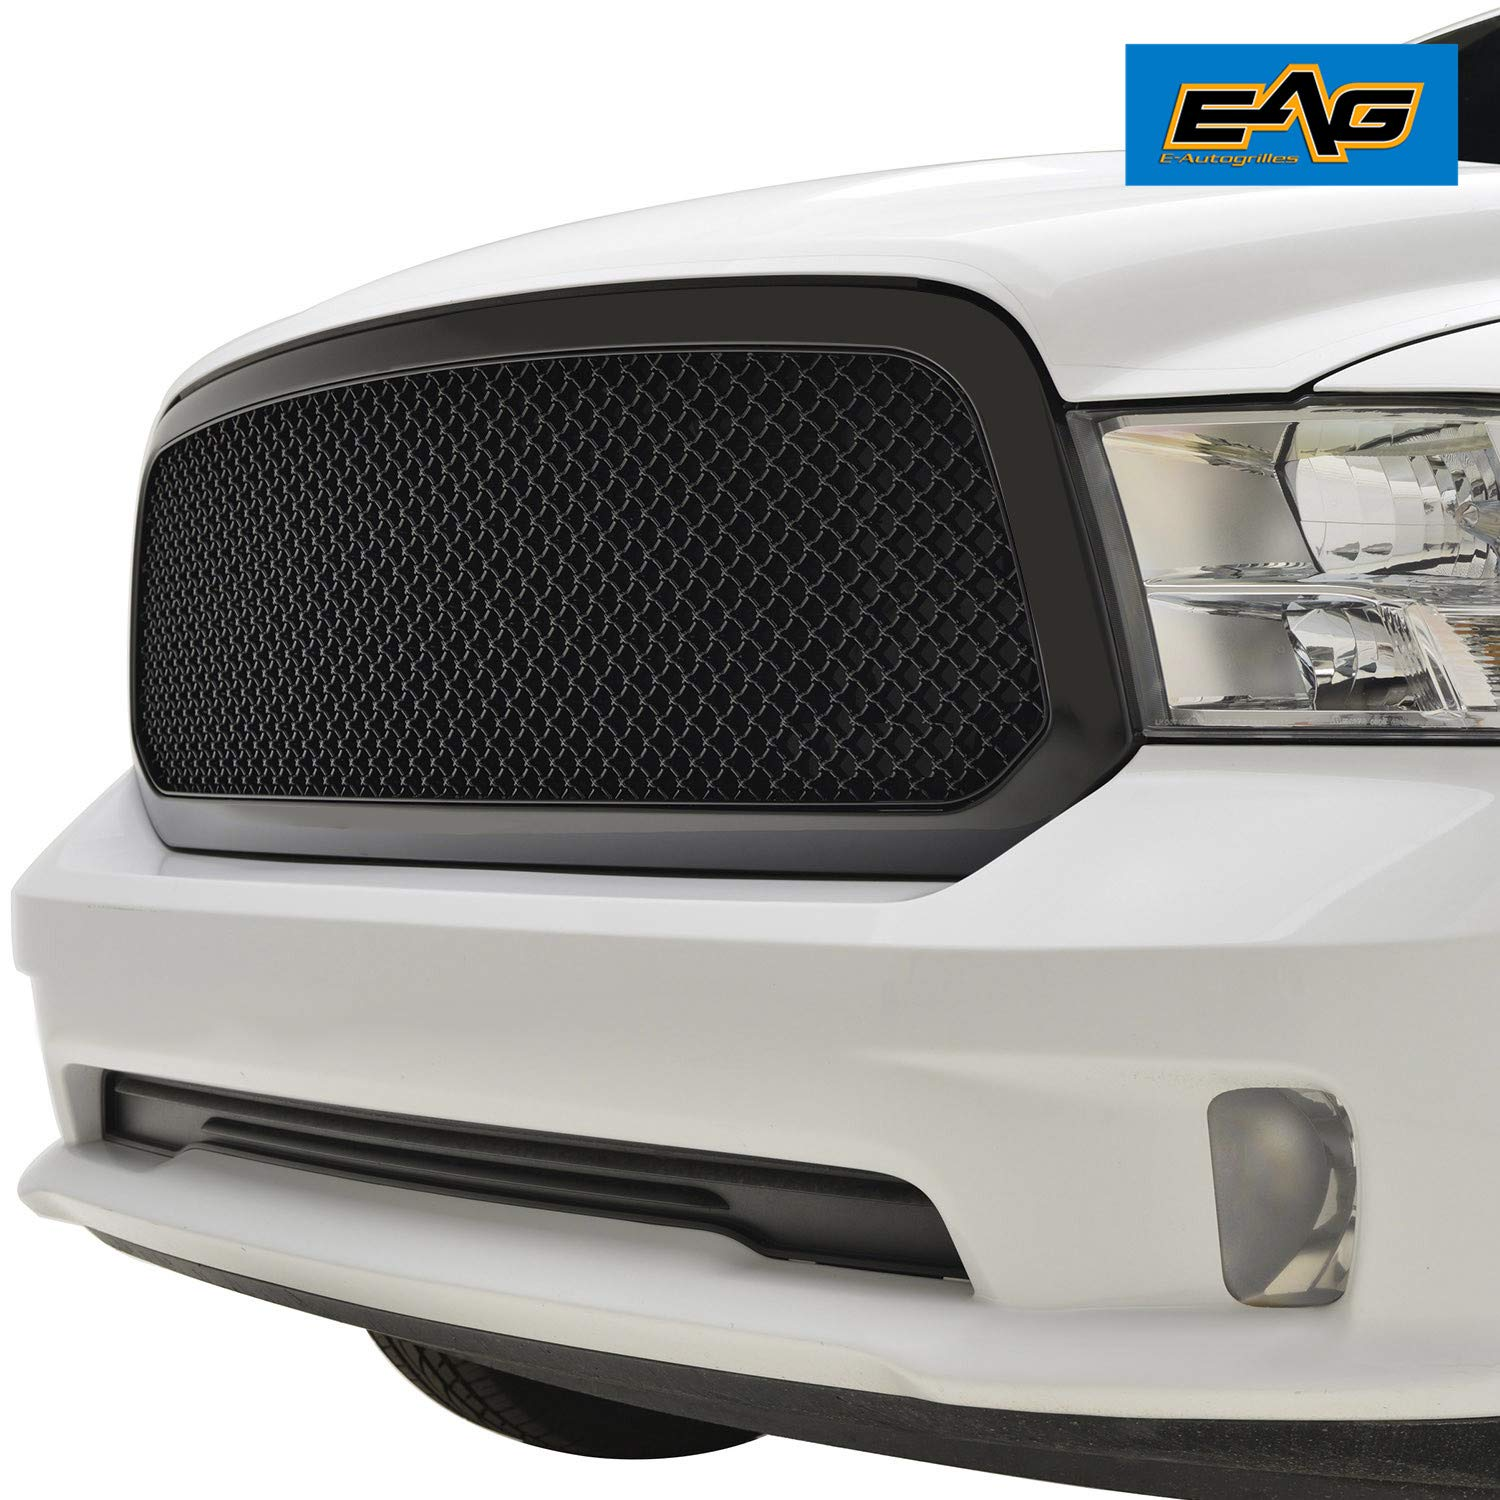 EAG Mesh Grille ABS Replacement Matte Black for 13-18 Dodge Ram 1500